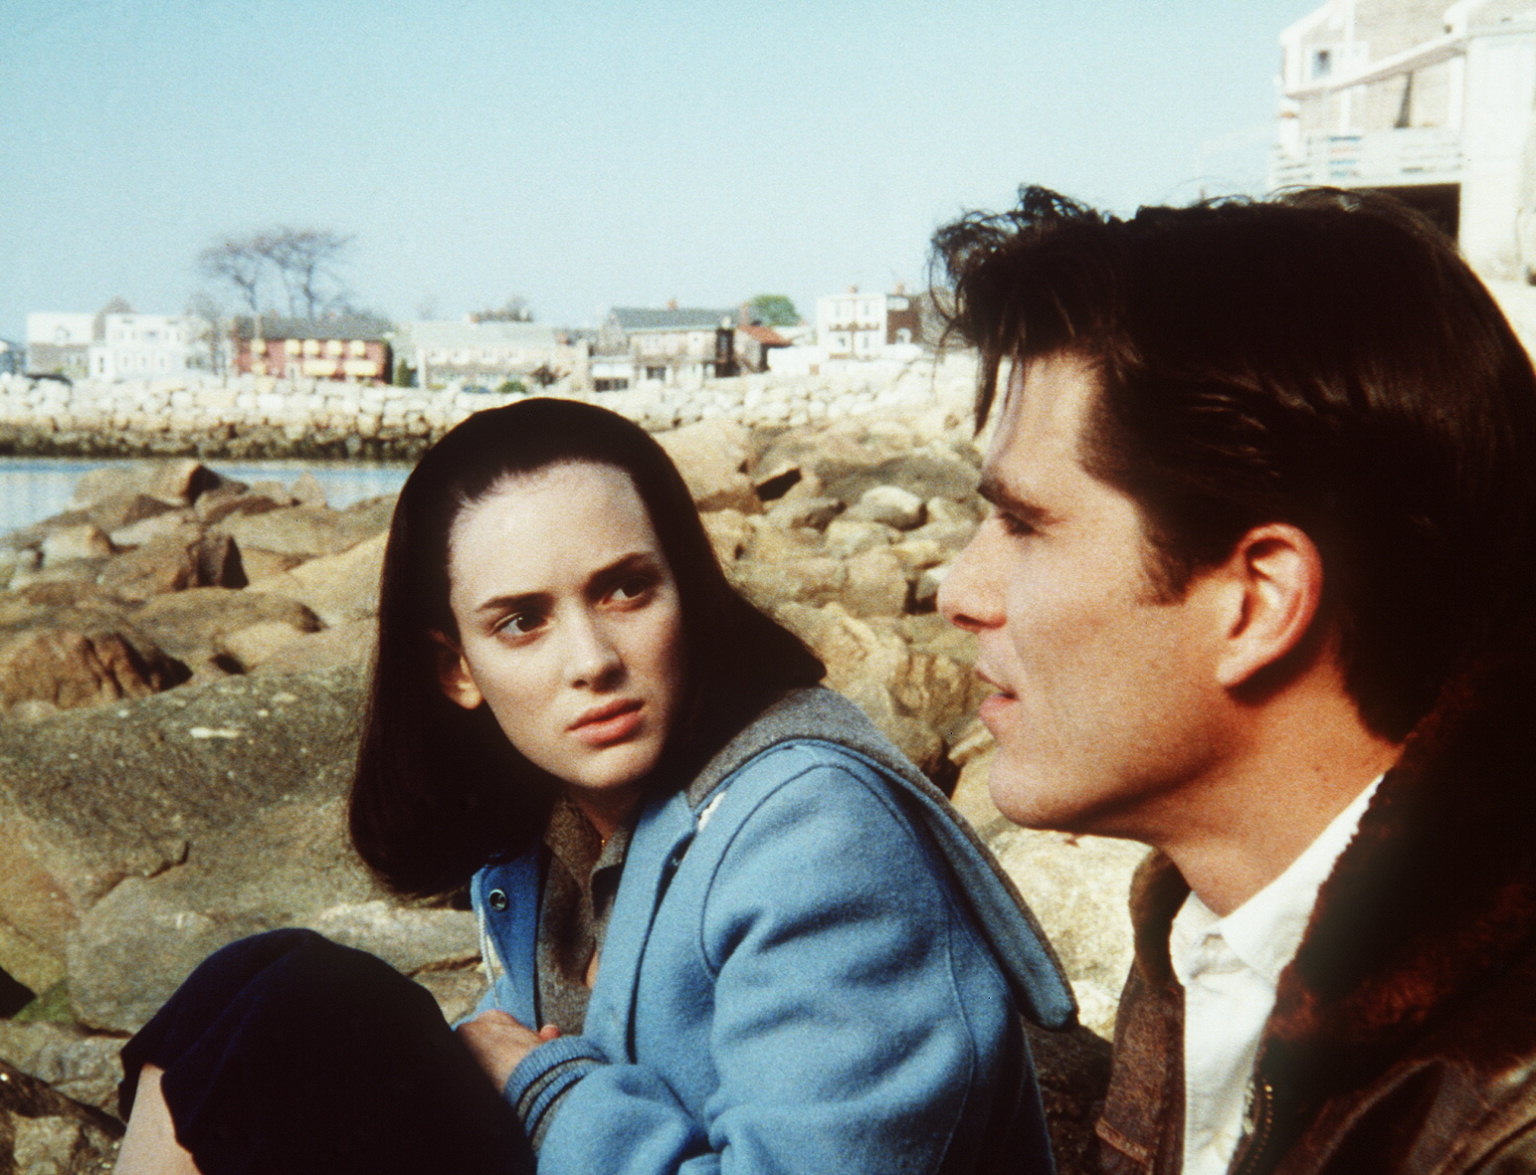 period film mermaids 1990 � the motion pictures